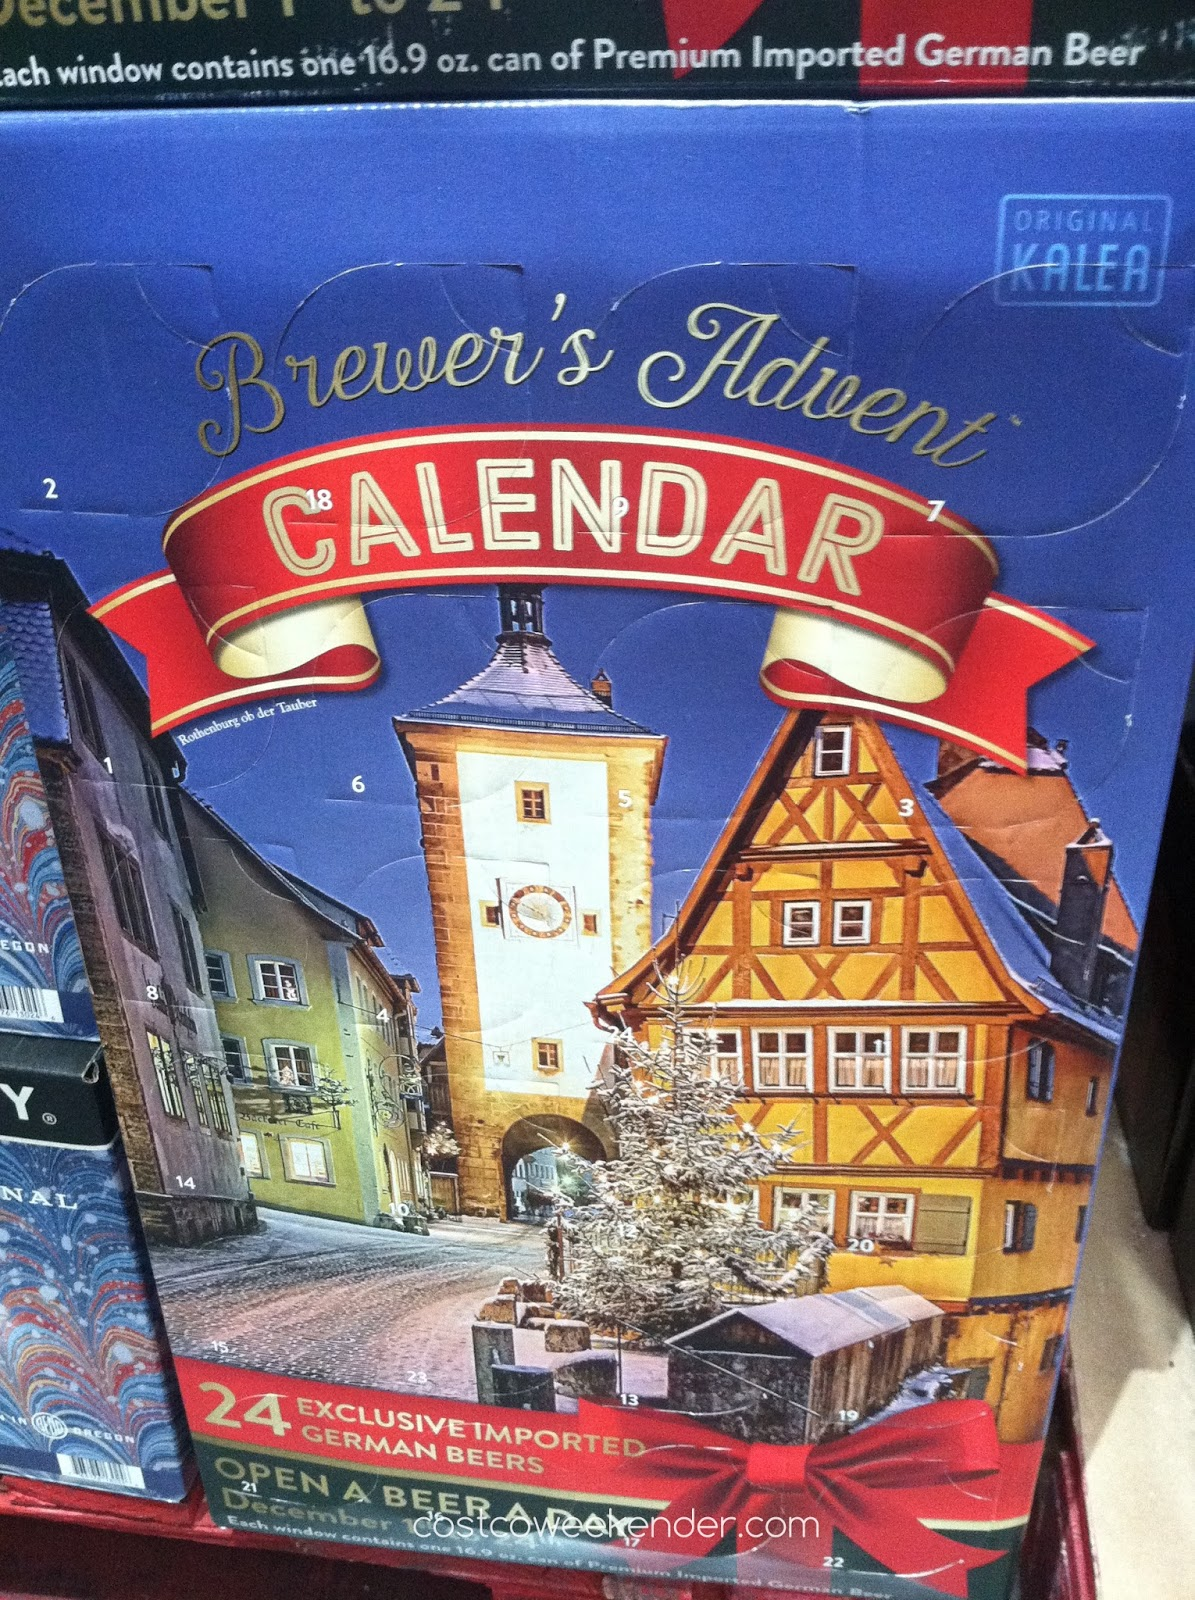 Enjoy a diverse collection of beers during Christmas with the Brewer's Advent Calendar